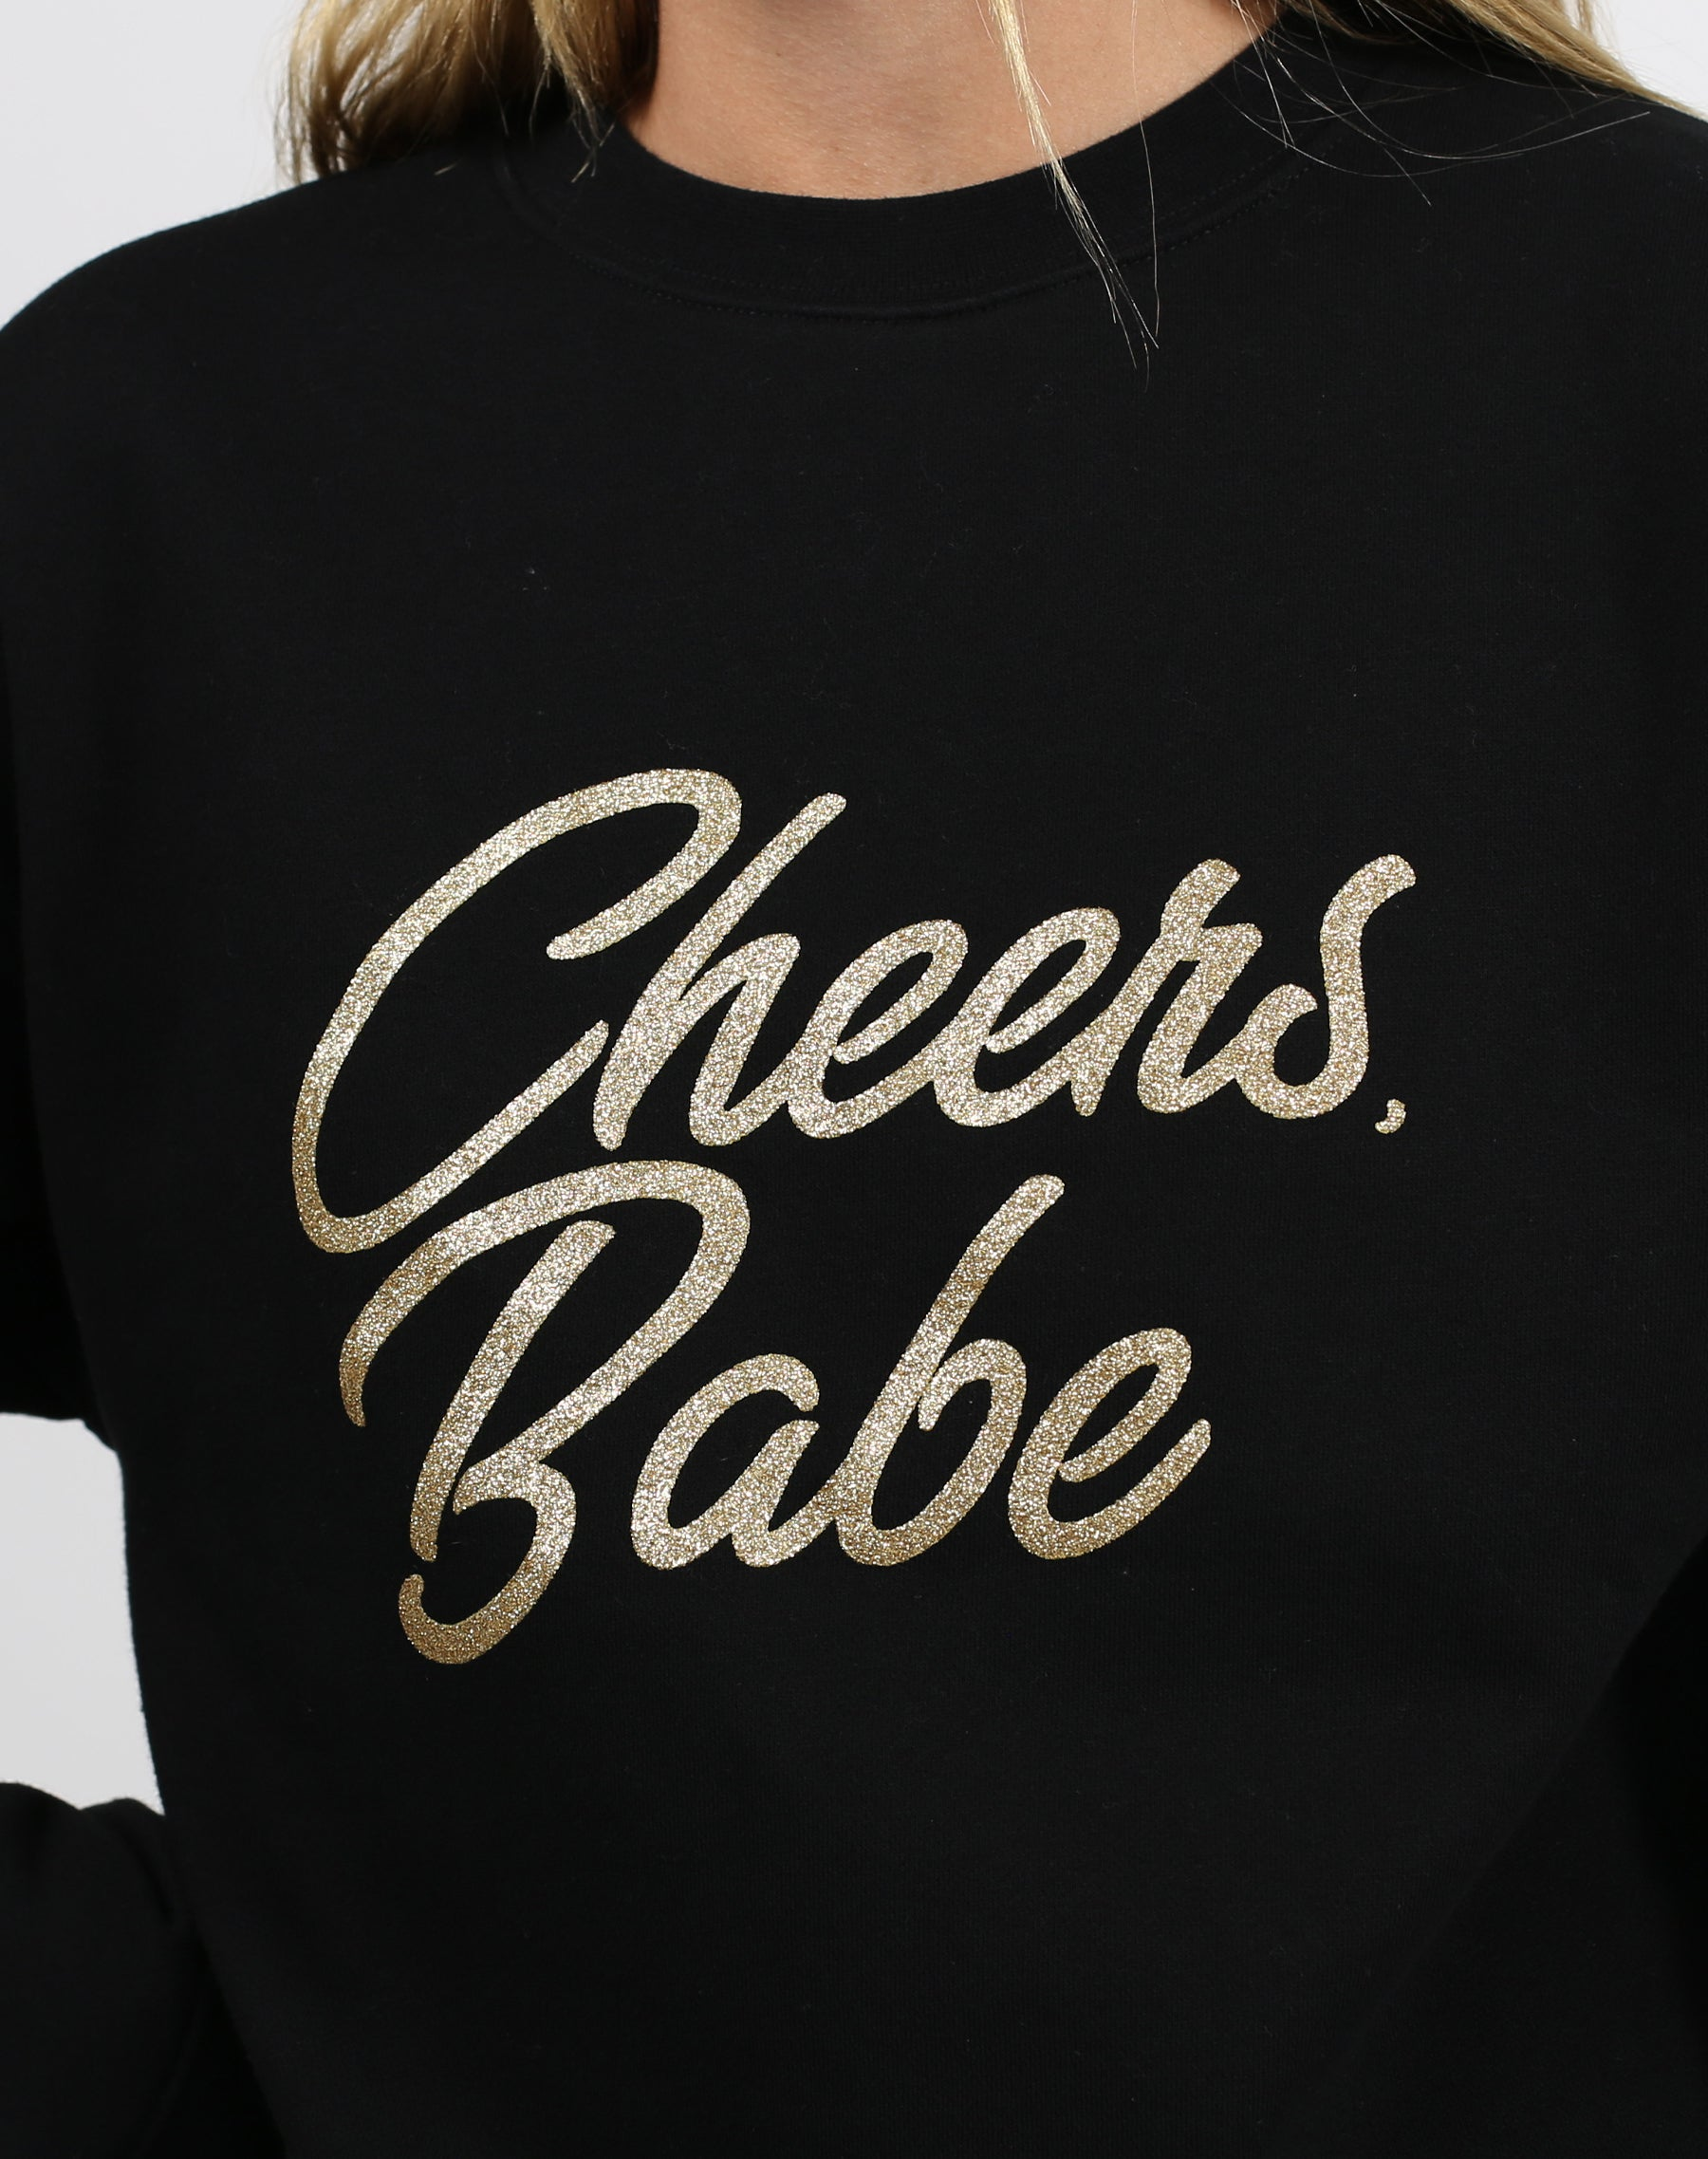 This is a photo of a model wearing the Cheers Babe Gold Glitter Classic Crew Neck Sweatshirt in Black by Brunette the Label.